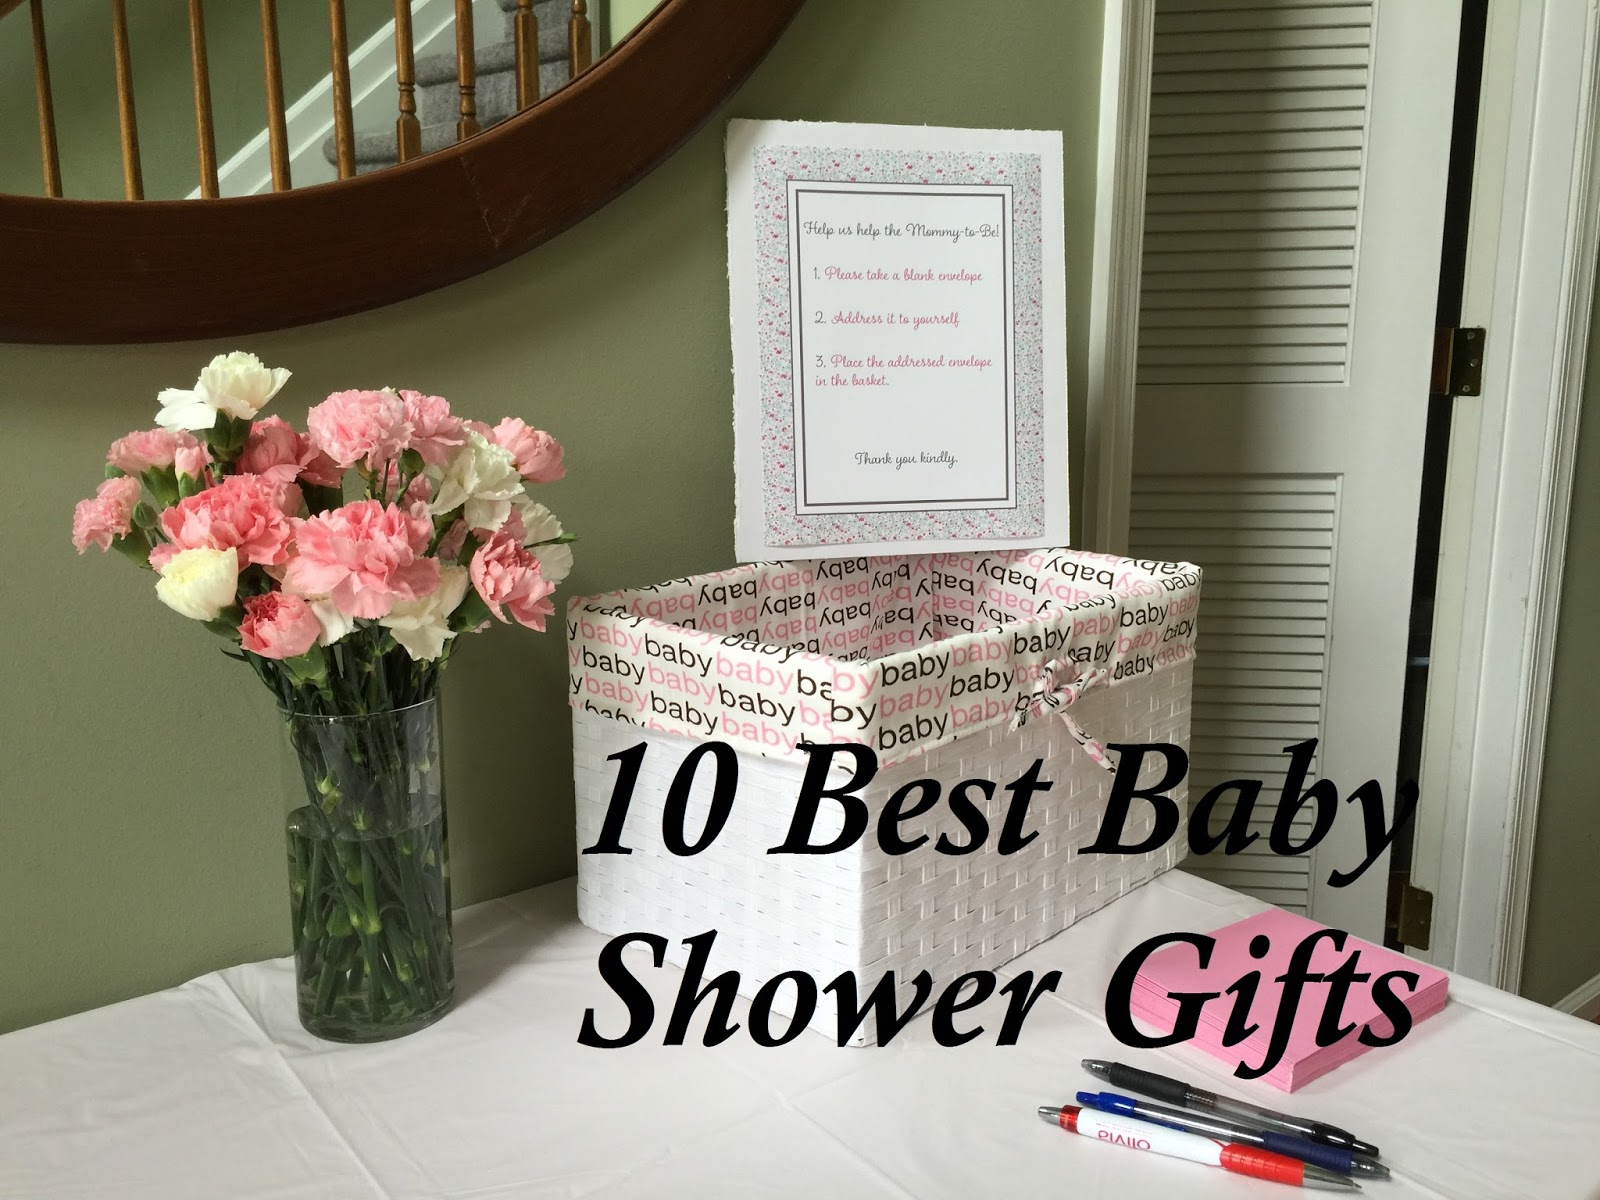 The Classy Chaos 10 Best Baby Shower Gifts